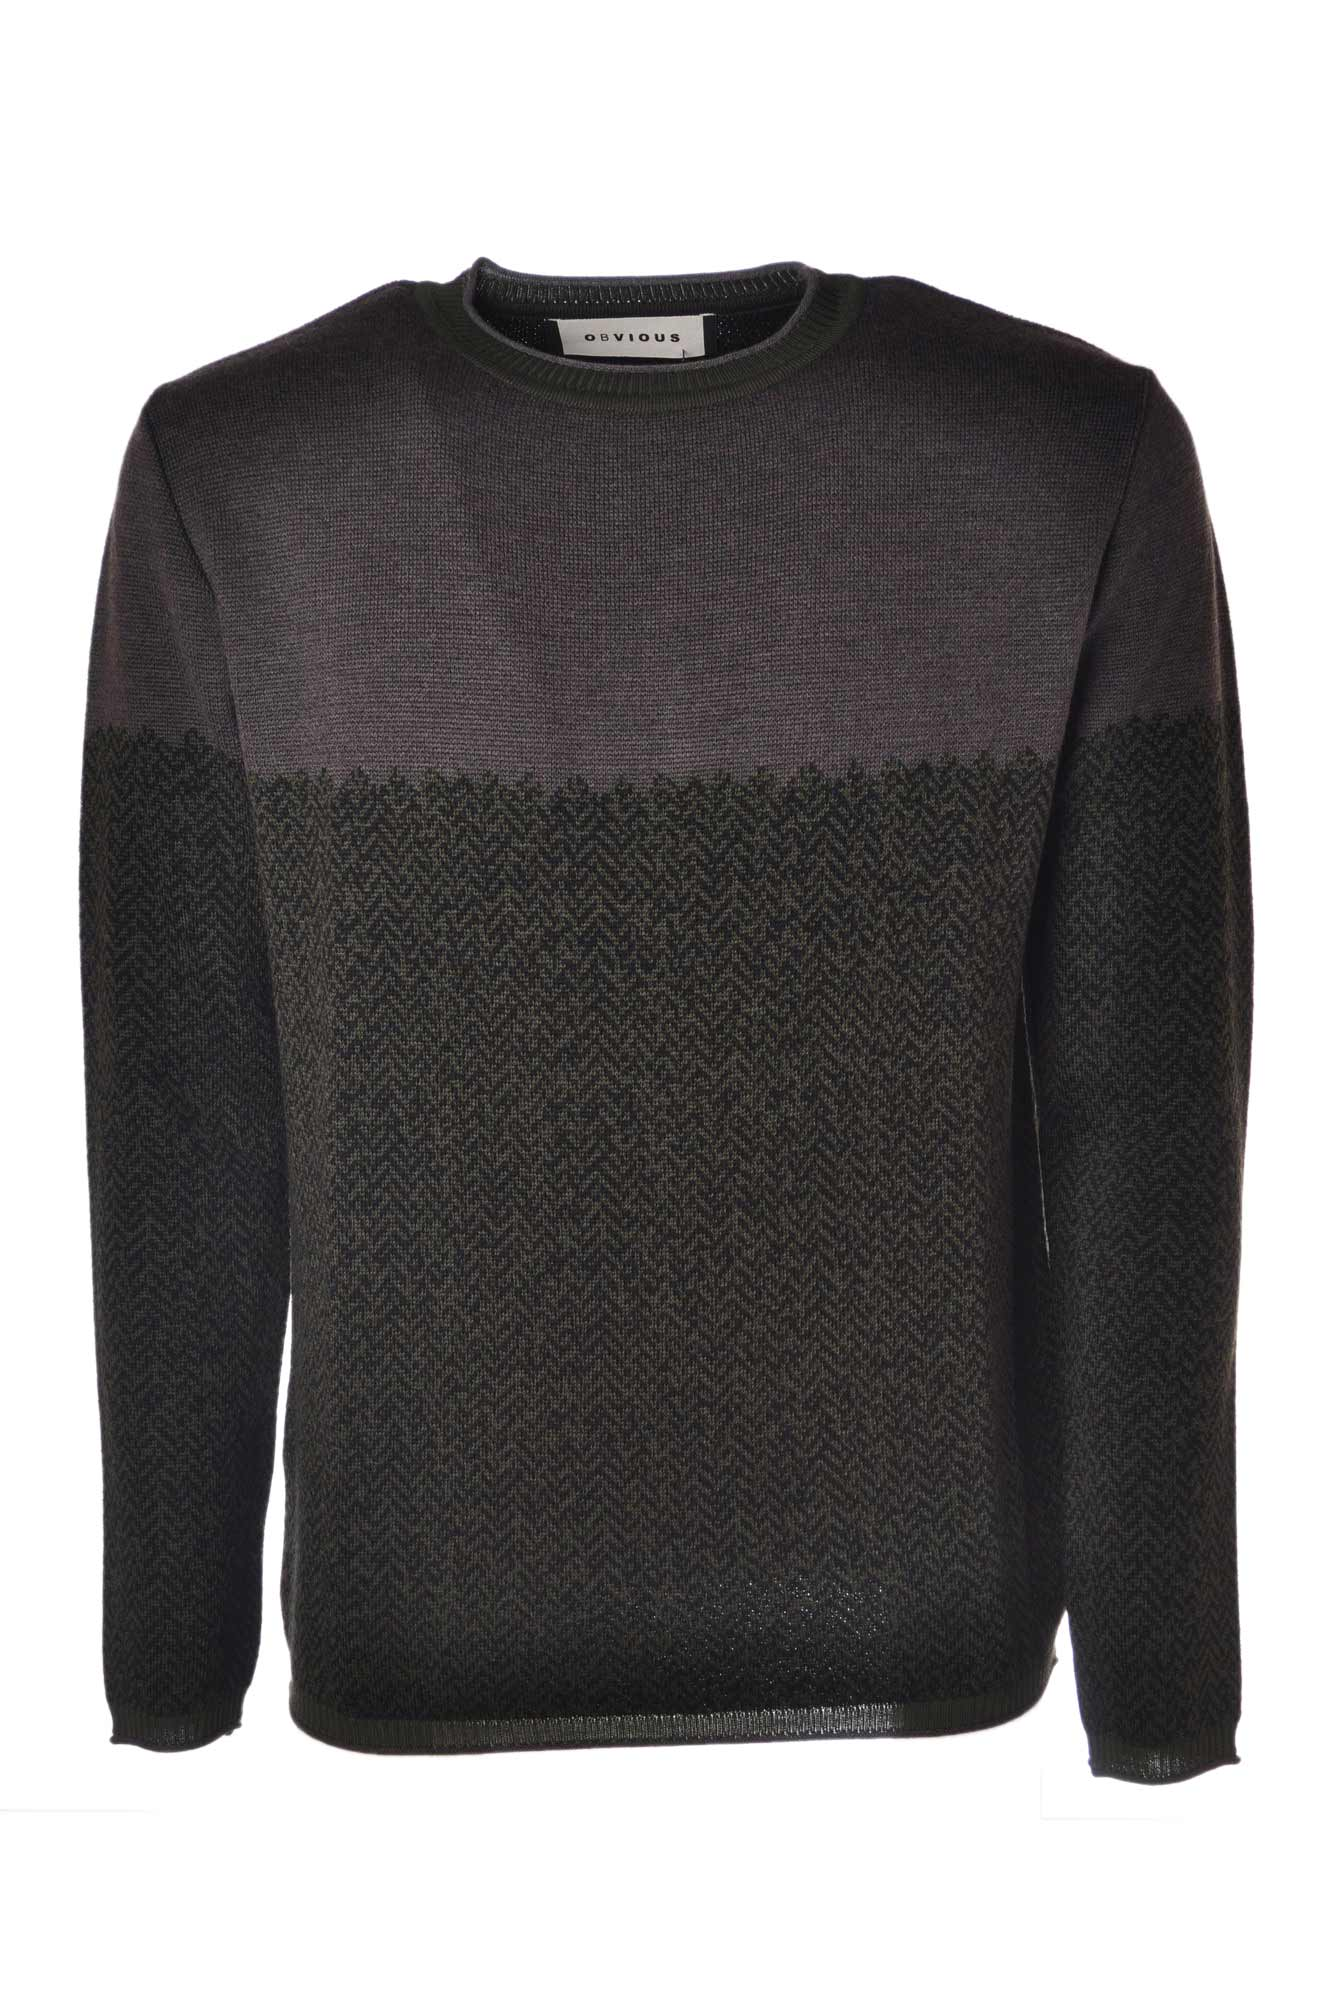 Obvious Basic - Pullover